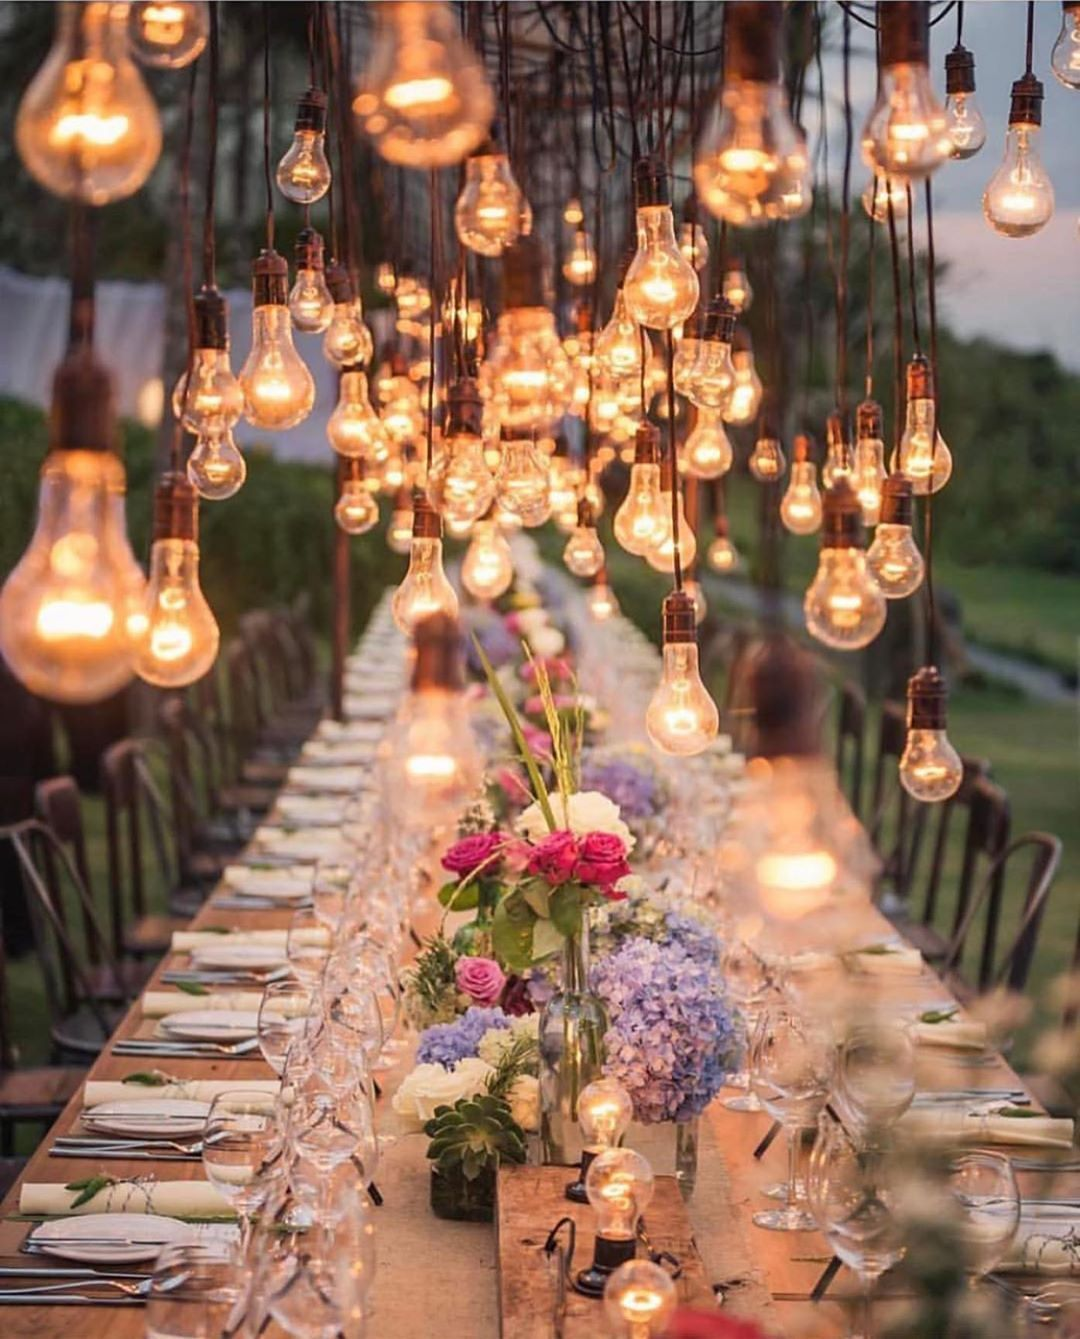 6 Nature Wedding Decor Ideas That Are Trending Like By Dlb 6 nature wedding decor ideas that are trending like